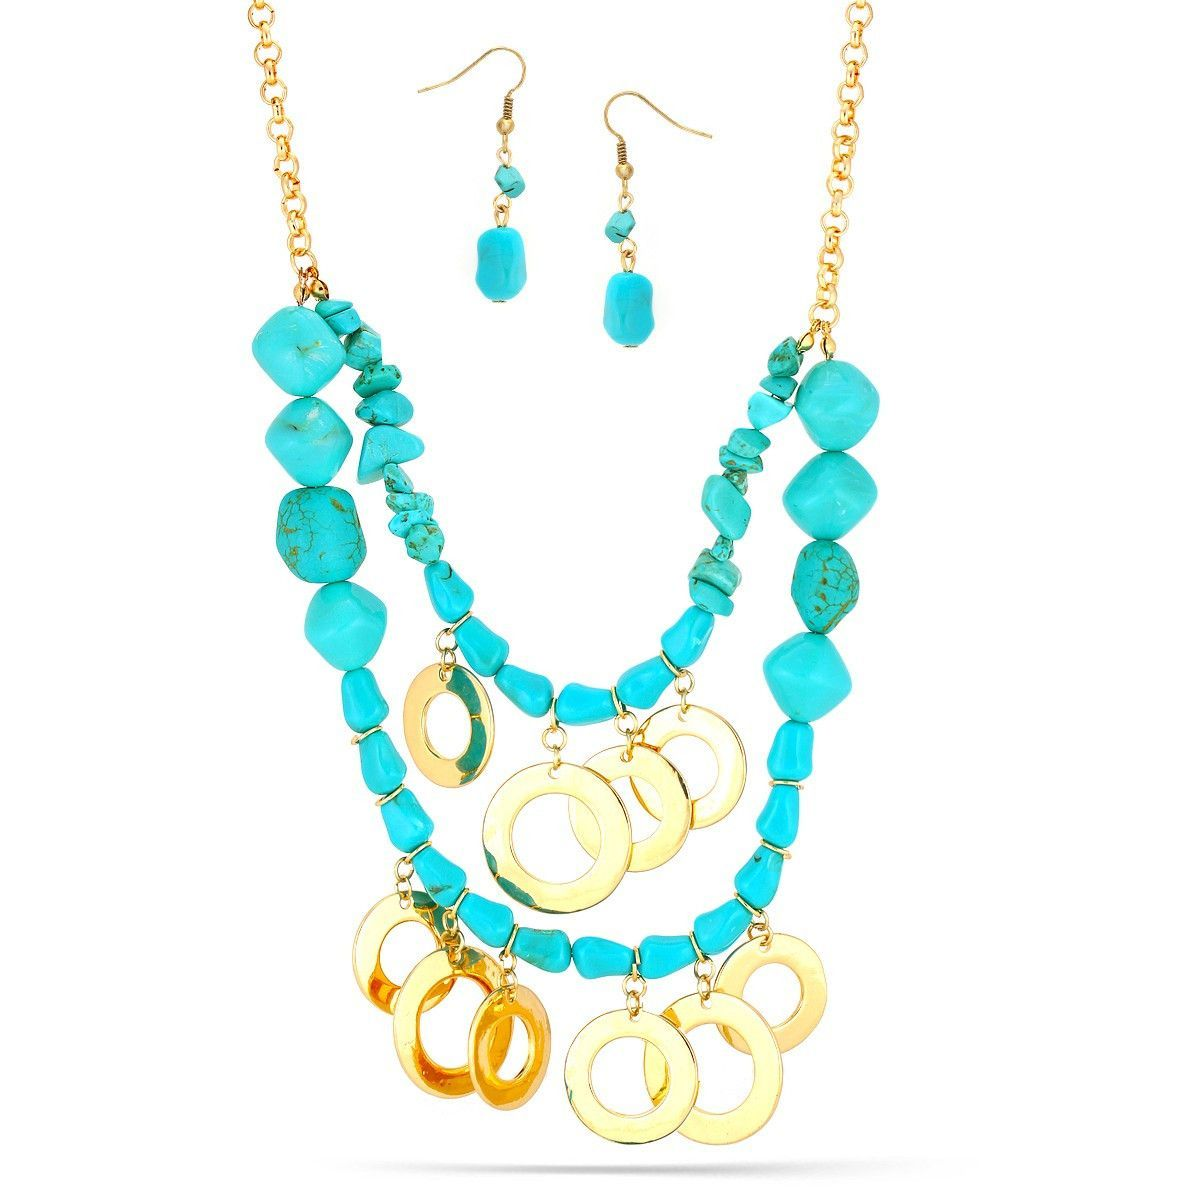 Gold-Tone Metal Turquoise Necklace And Earrings Set